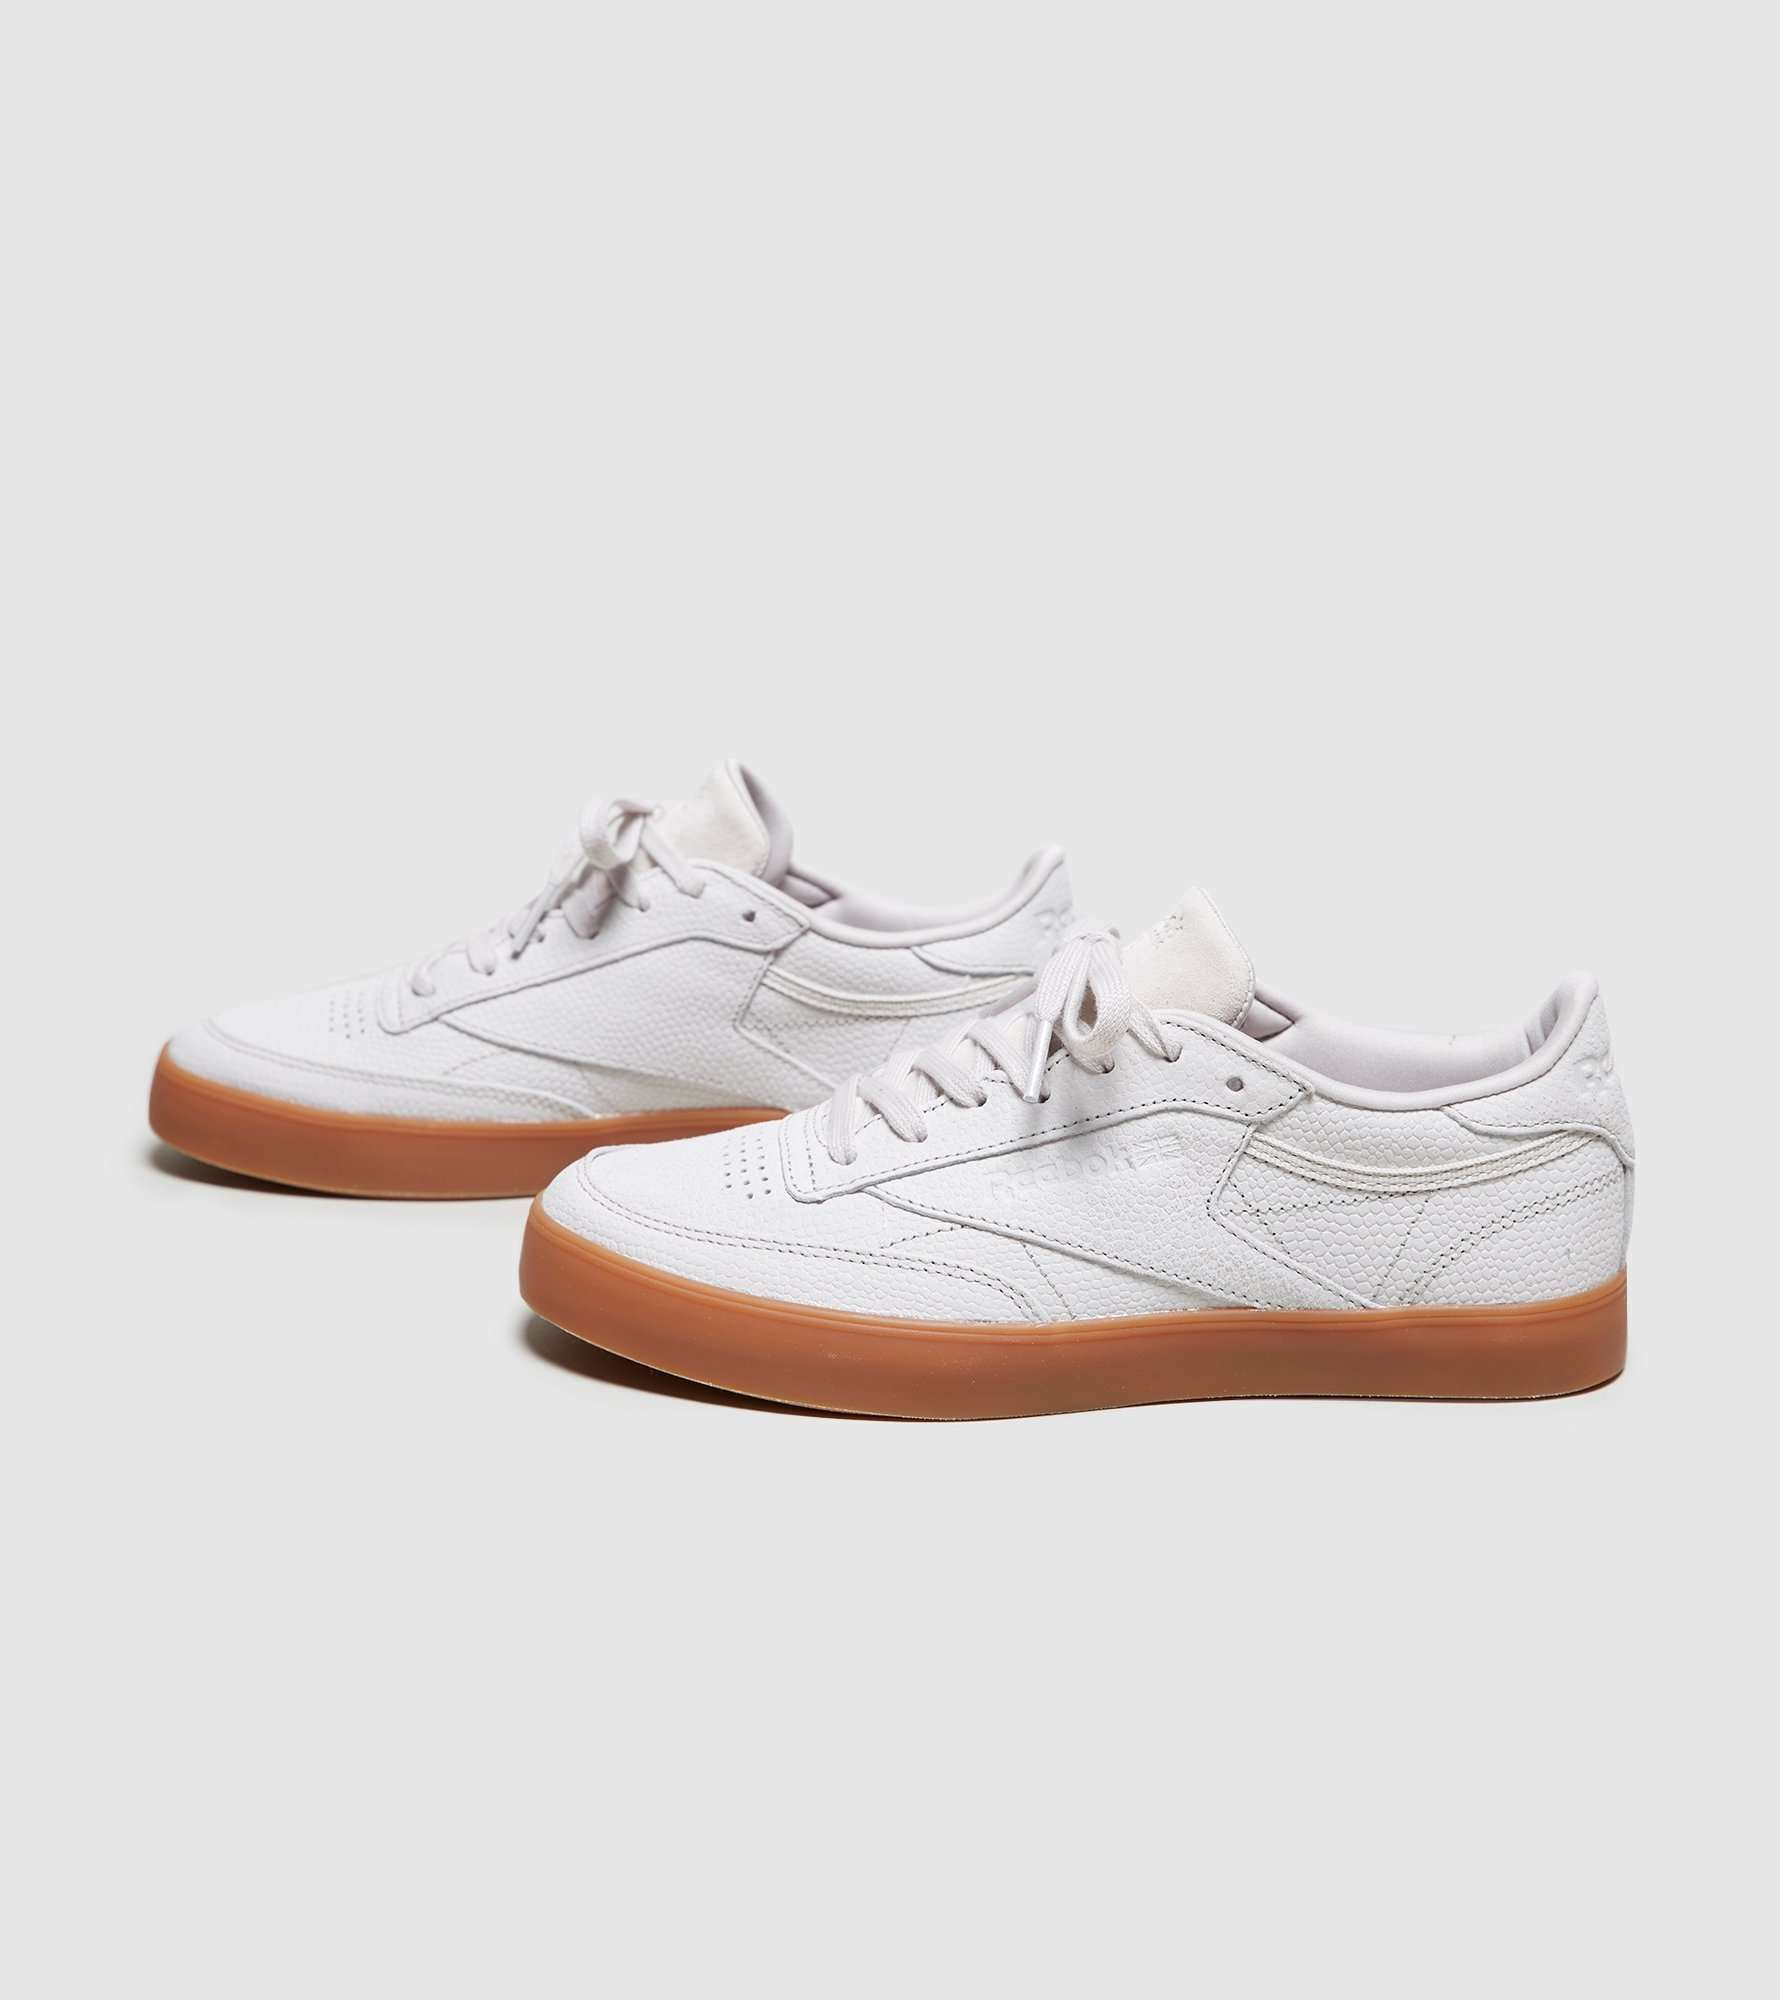 659ee8599356c Reebok Club C 85 FVS Women s - find out more on our site. Find the freshest  in trainers and clothing online now.